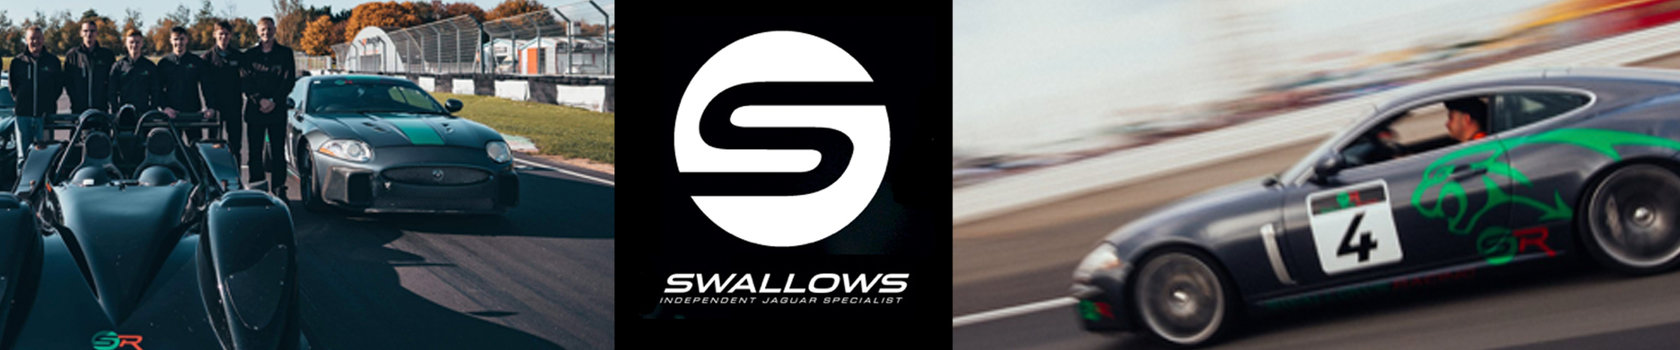 Swallows Event Header